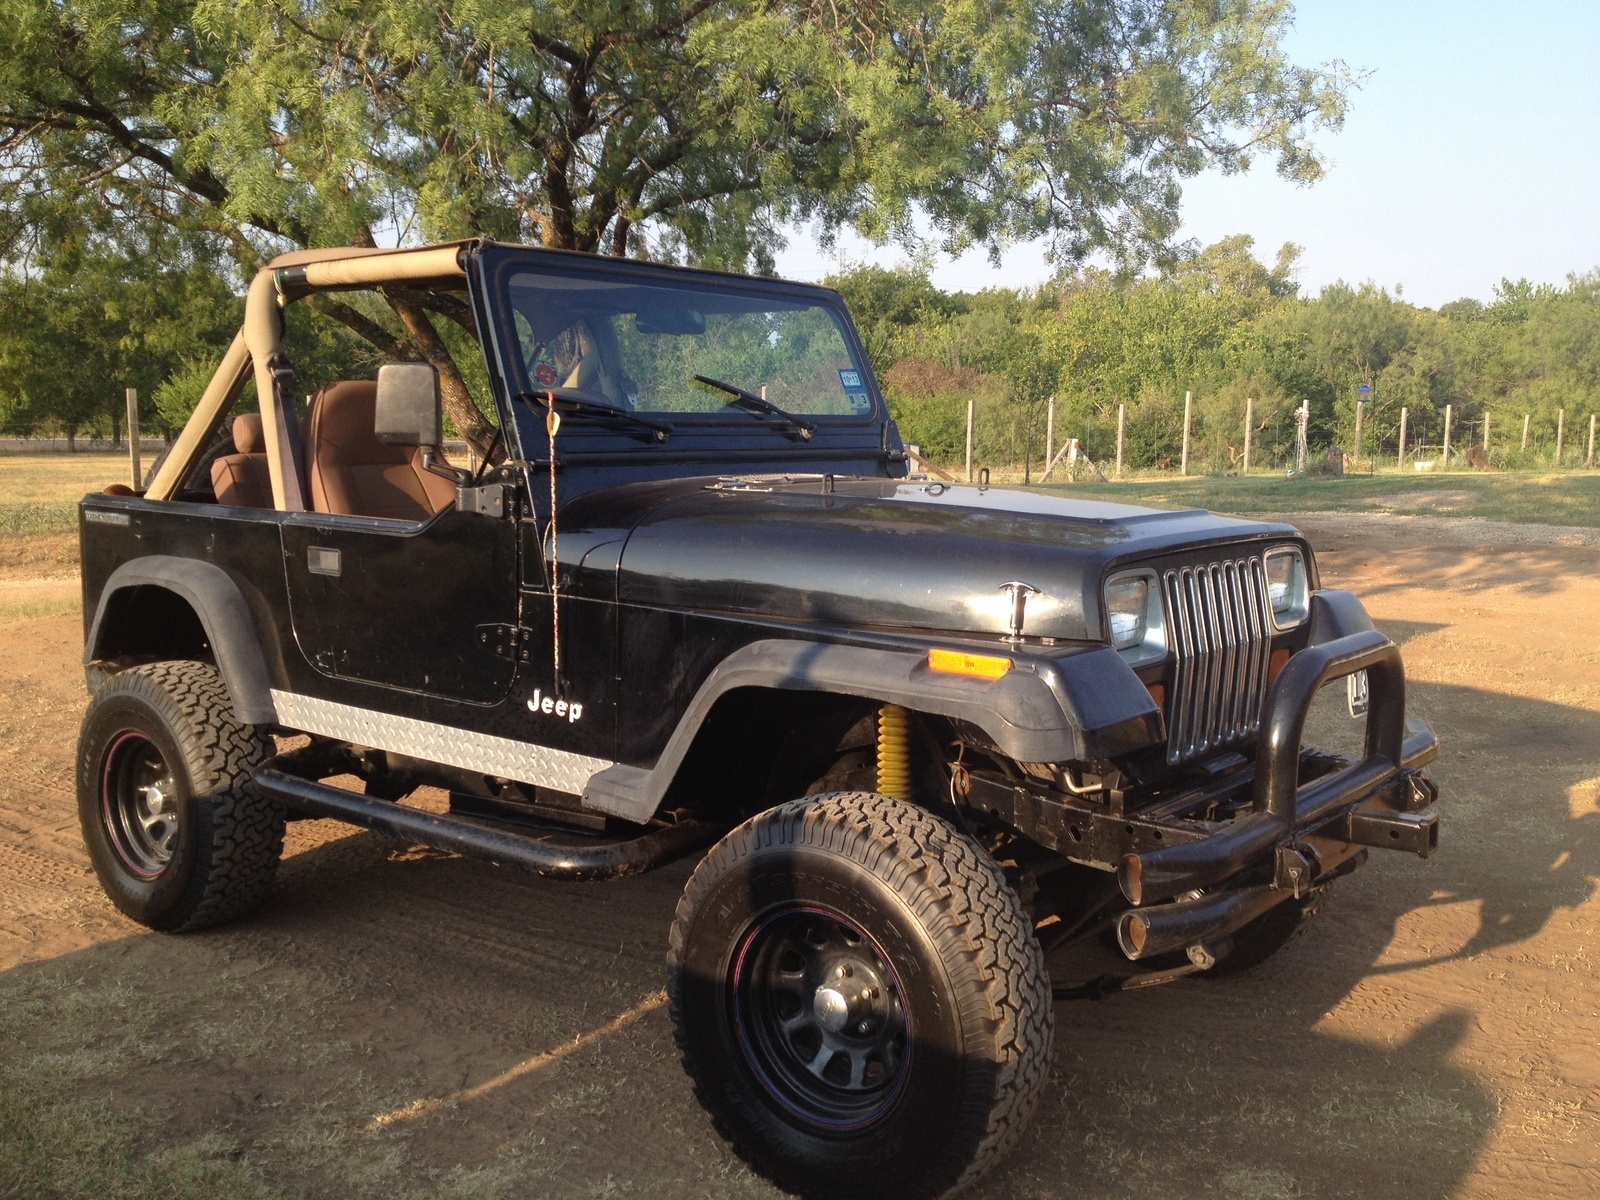 jeep online wrangler al for tanner view lot cert carfinder sale auto left title en salvage of in copart auctions yellow on